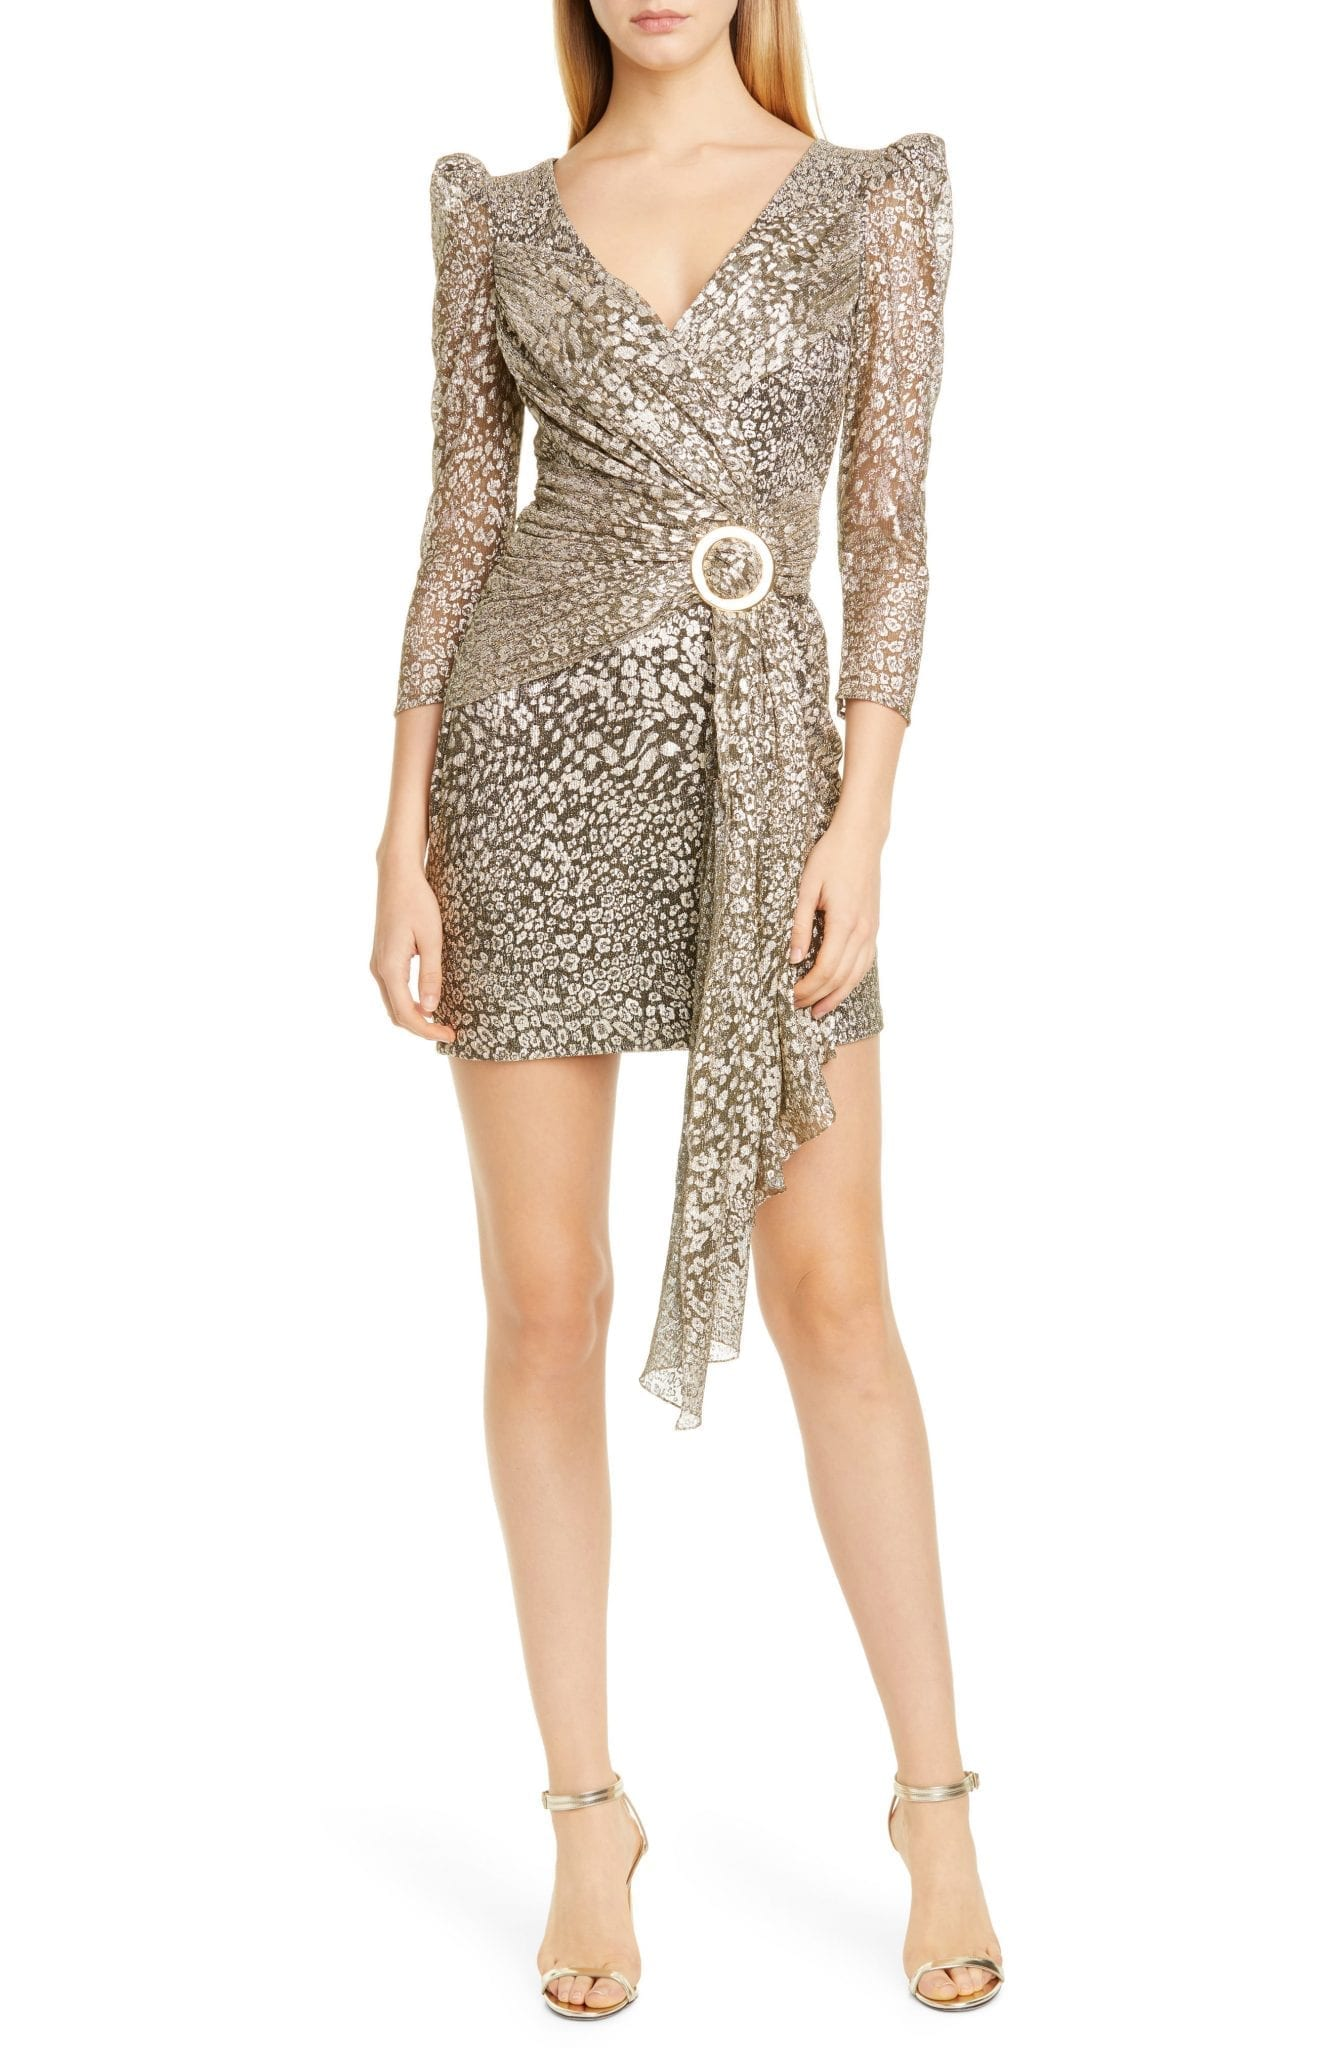 PATBO Metallic Leopard Spot Cocktail Mini Dress